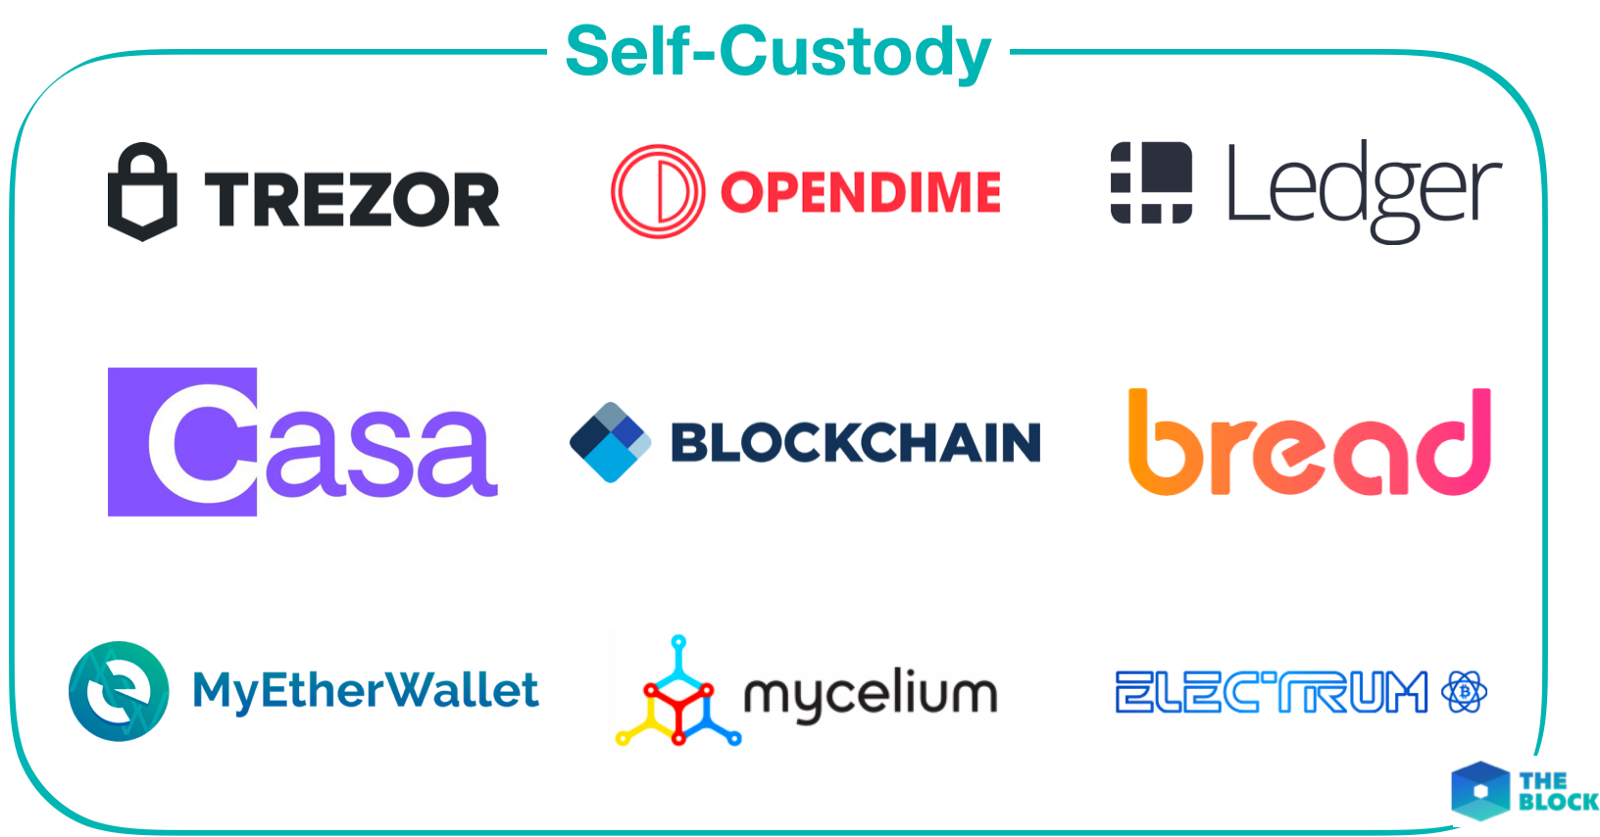 Mapping Out Crypto Custody Solutions The Block Isolated Power Supply With Virtual Remote Sense Self Is Process Of Securing Ones Private Keys And Cryptoassets Through Use Software Or Hardware Come In Many